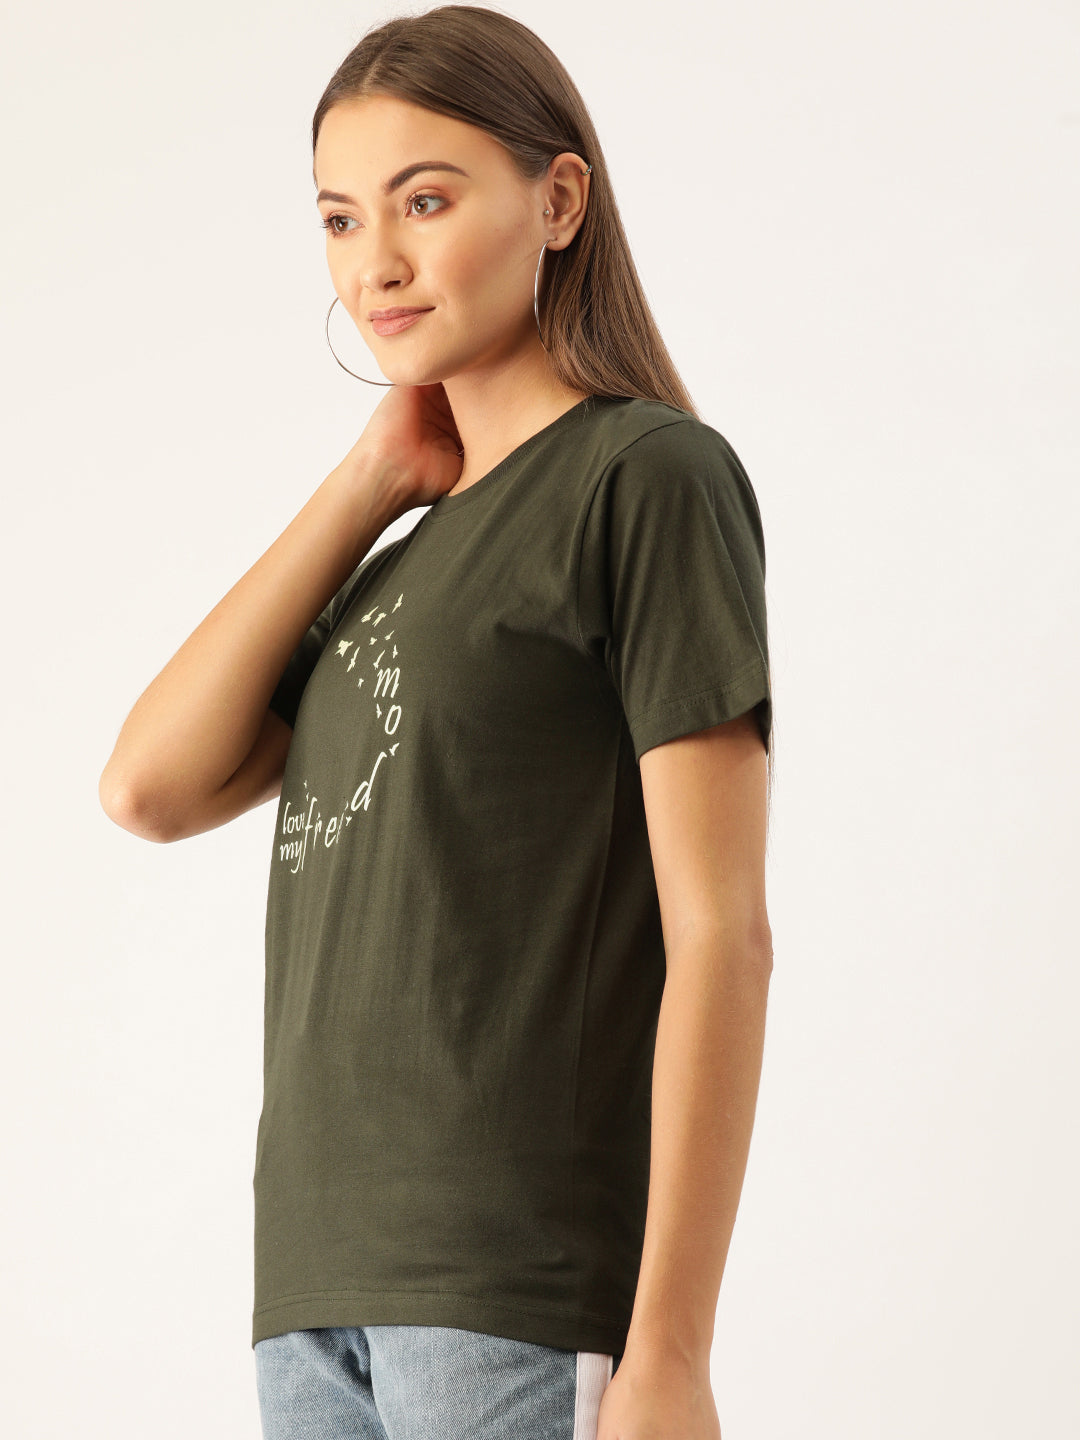 Freedom Women Green T-Shirt - YOLOCLAN